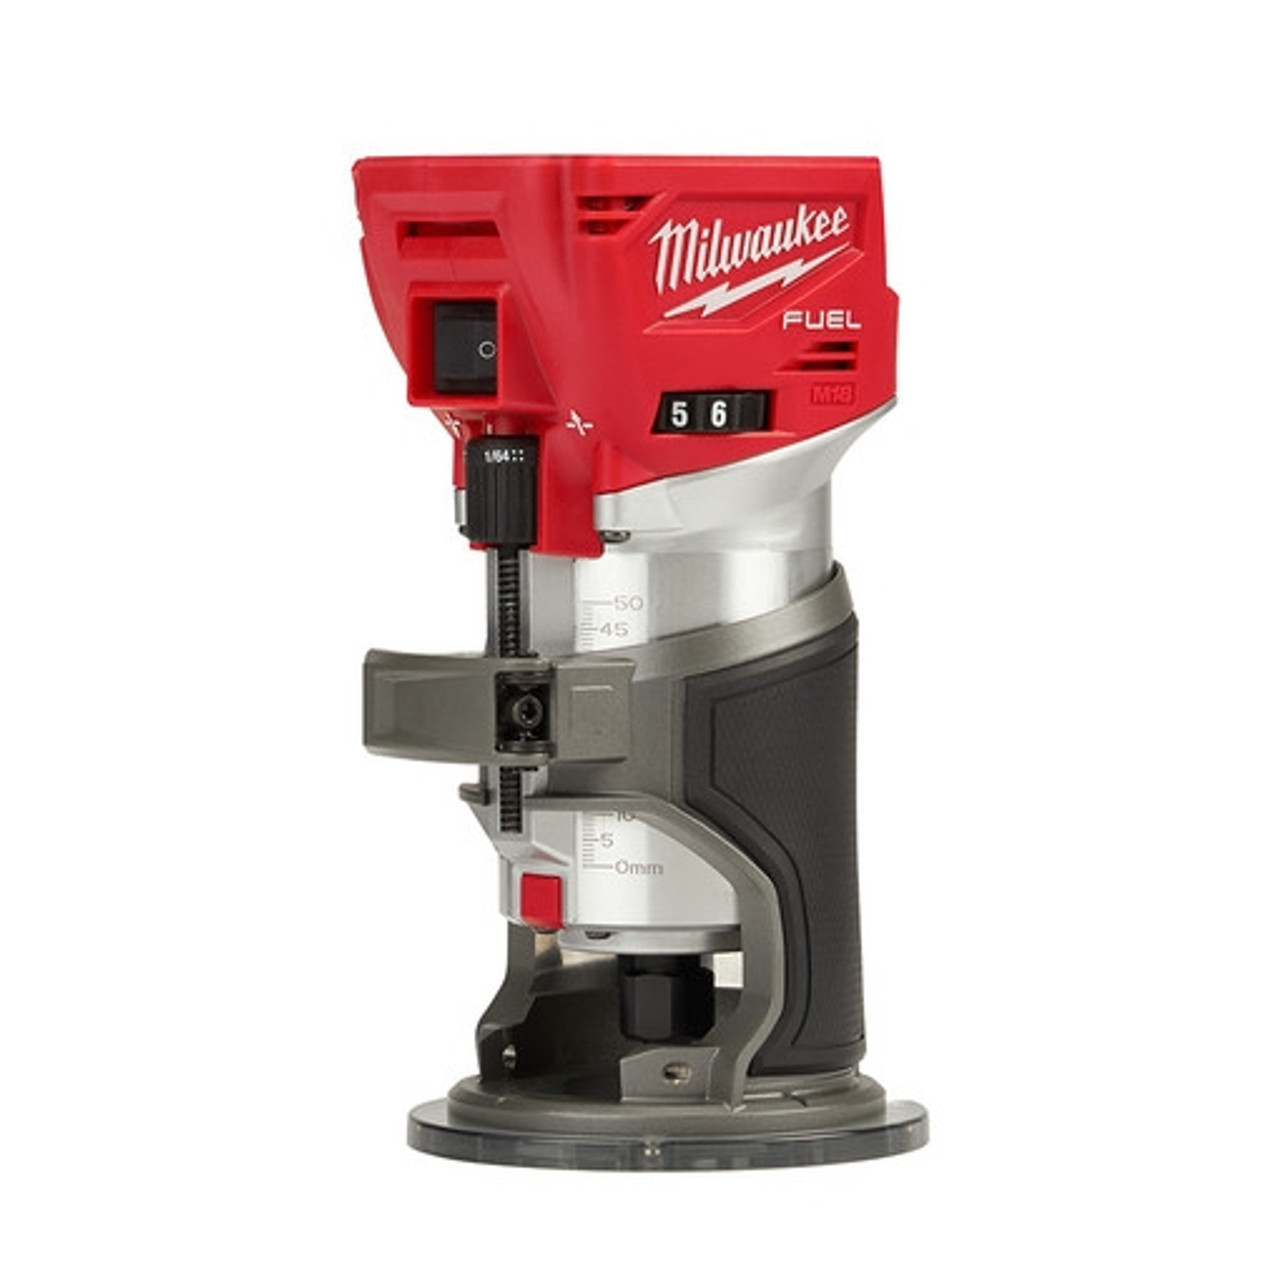 Milwaukee 2723-20 M18 FUEL Compact Router